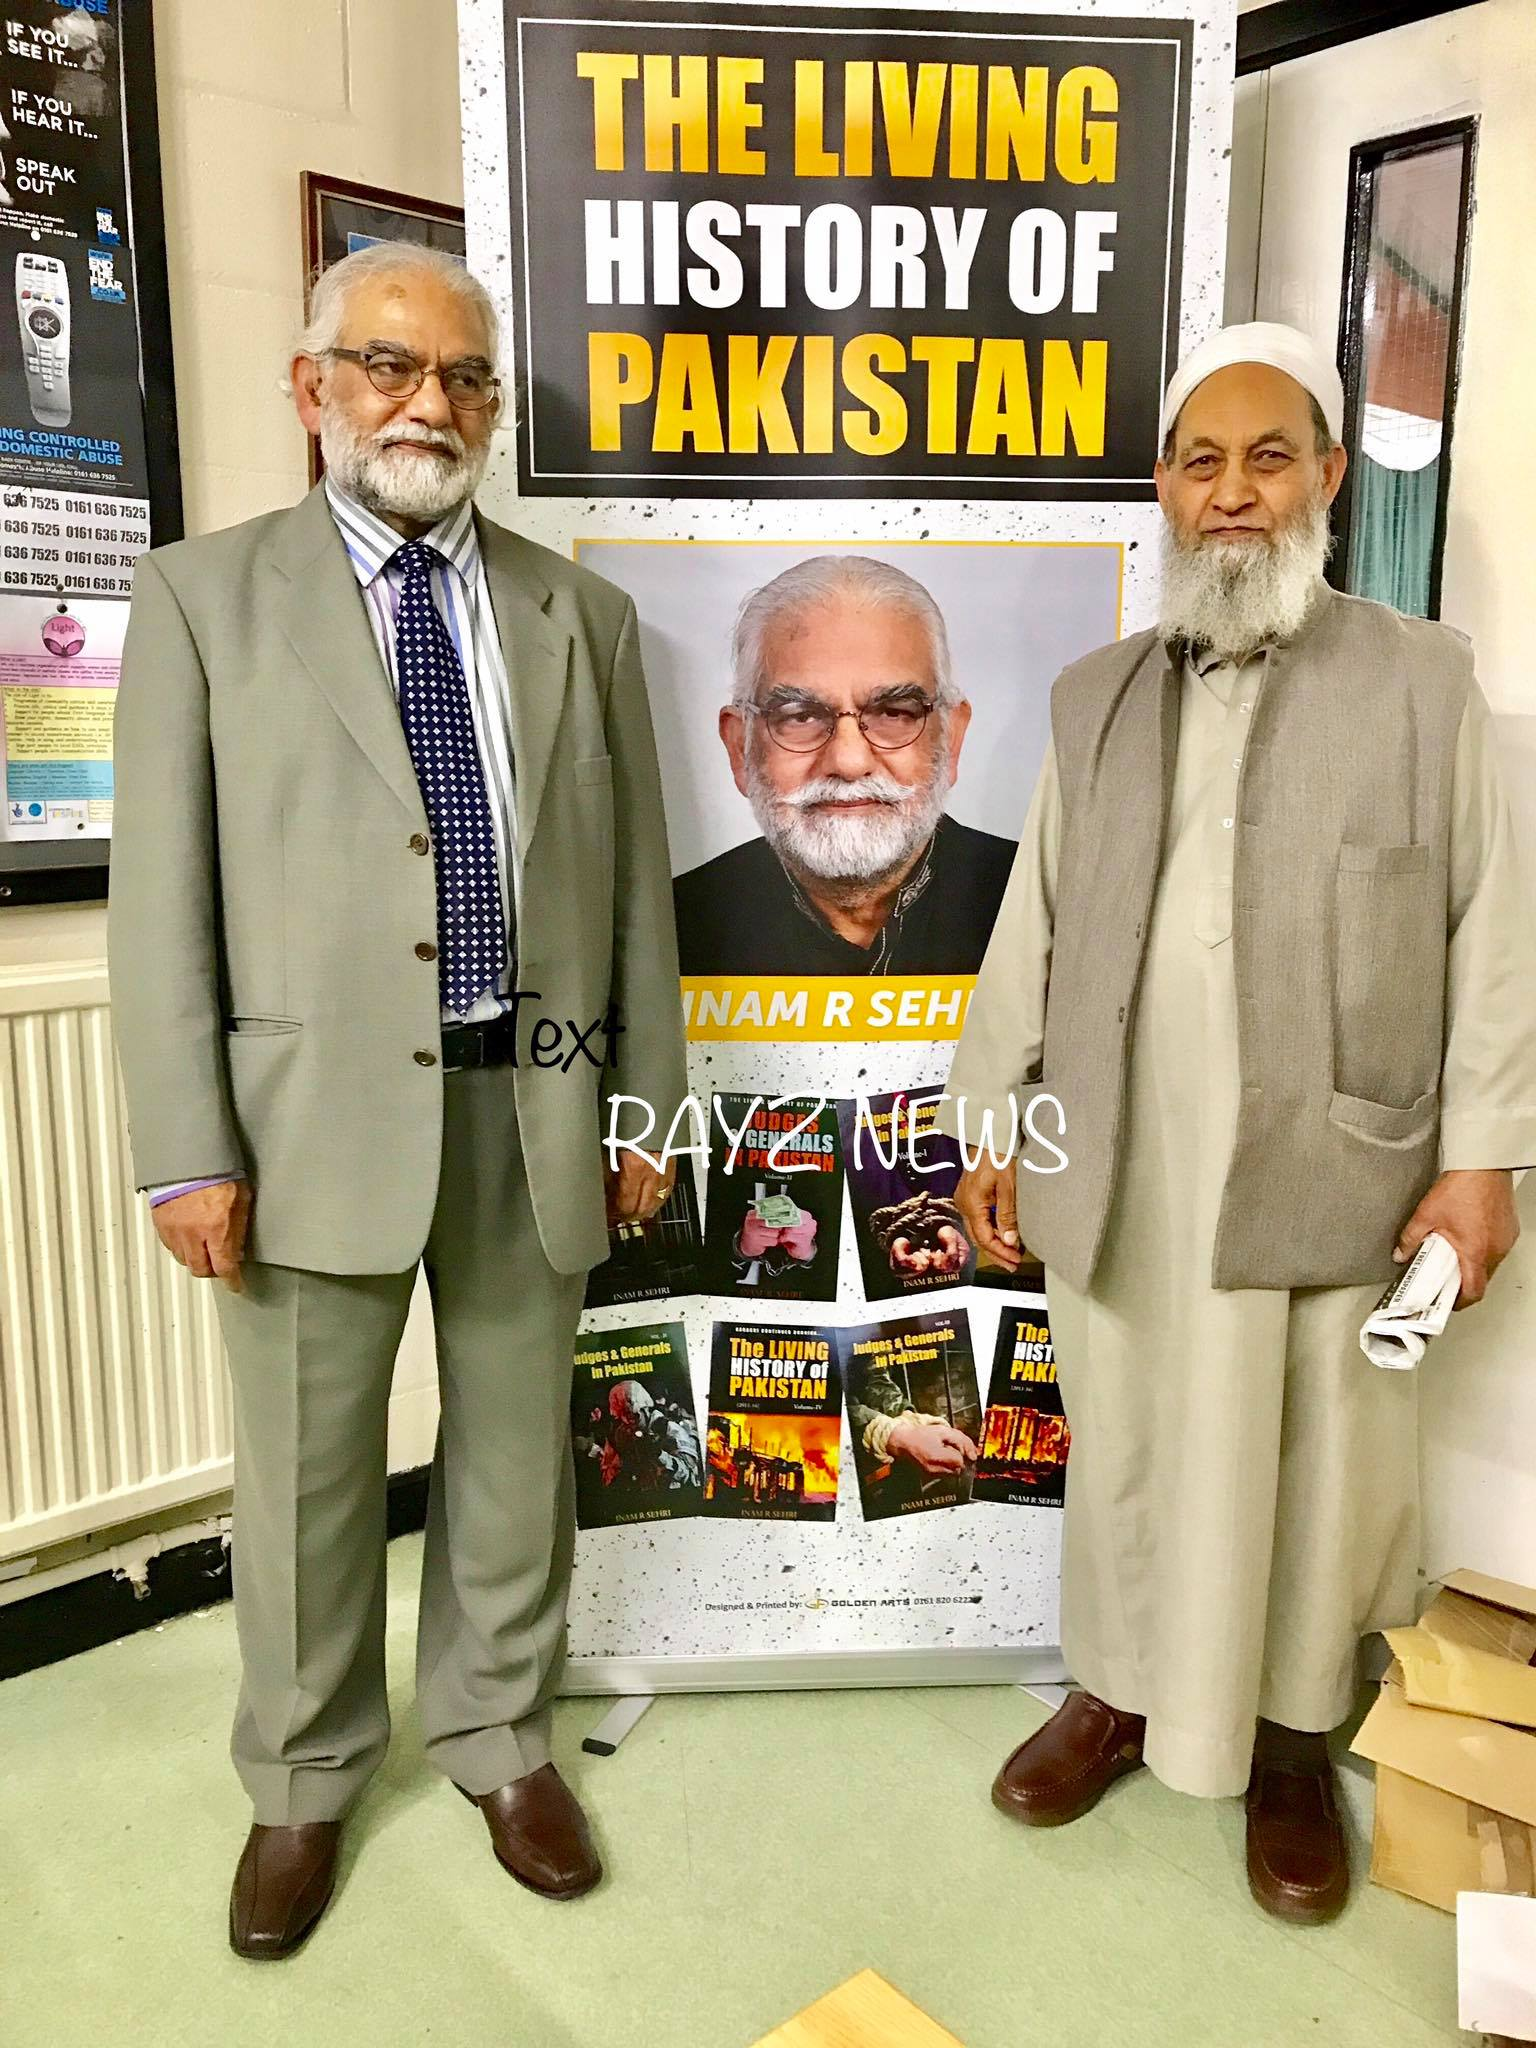 An evening was organised  in respect of honorary Mr Inam R Sehri for his new book launch